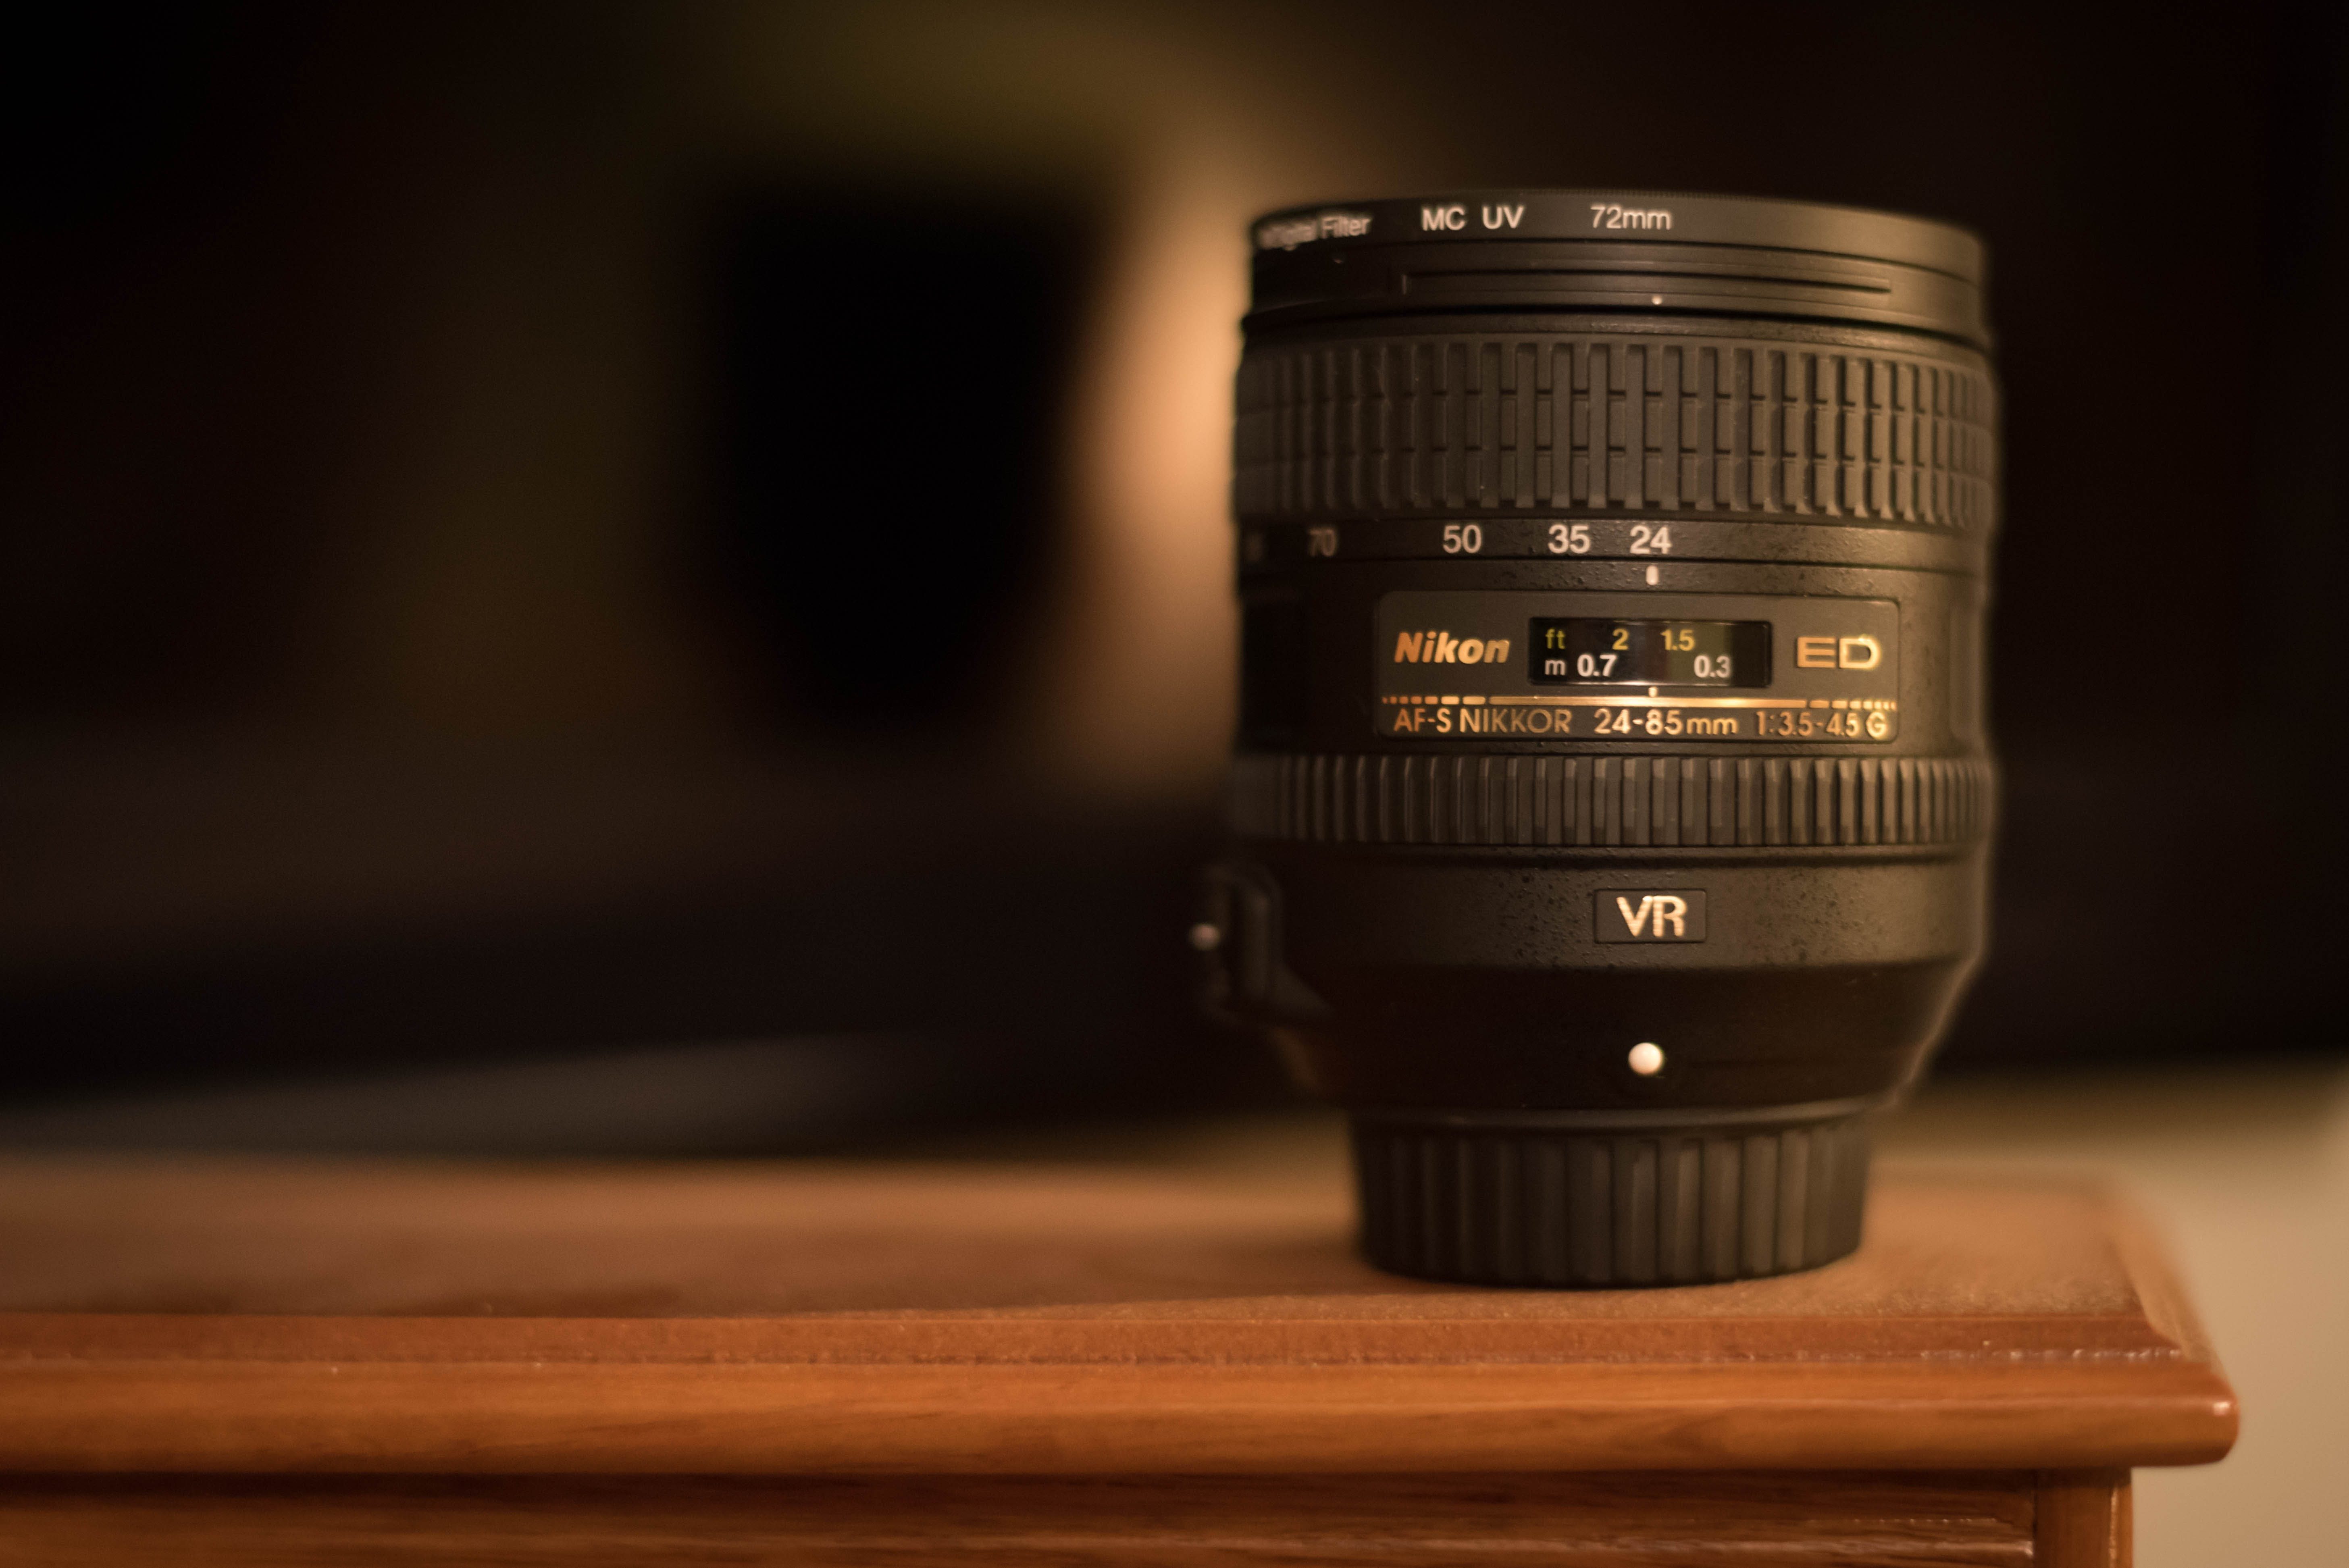 Black Nikon Dslr Camera Lens on Brown Surface